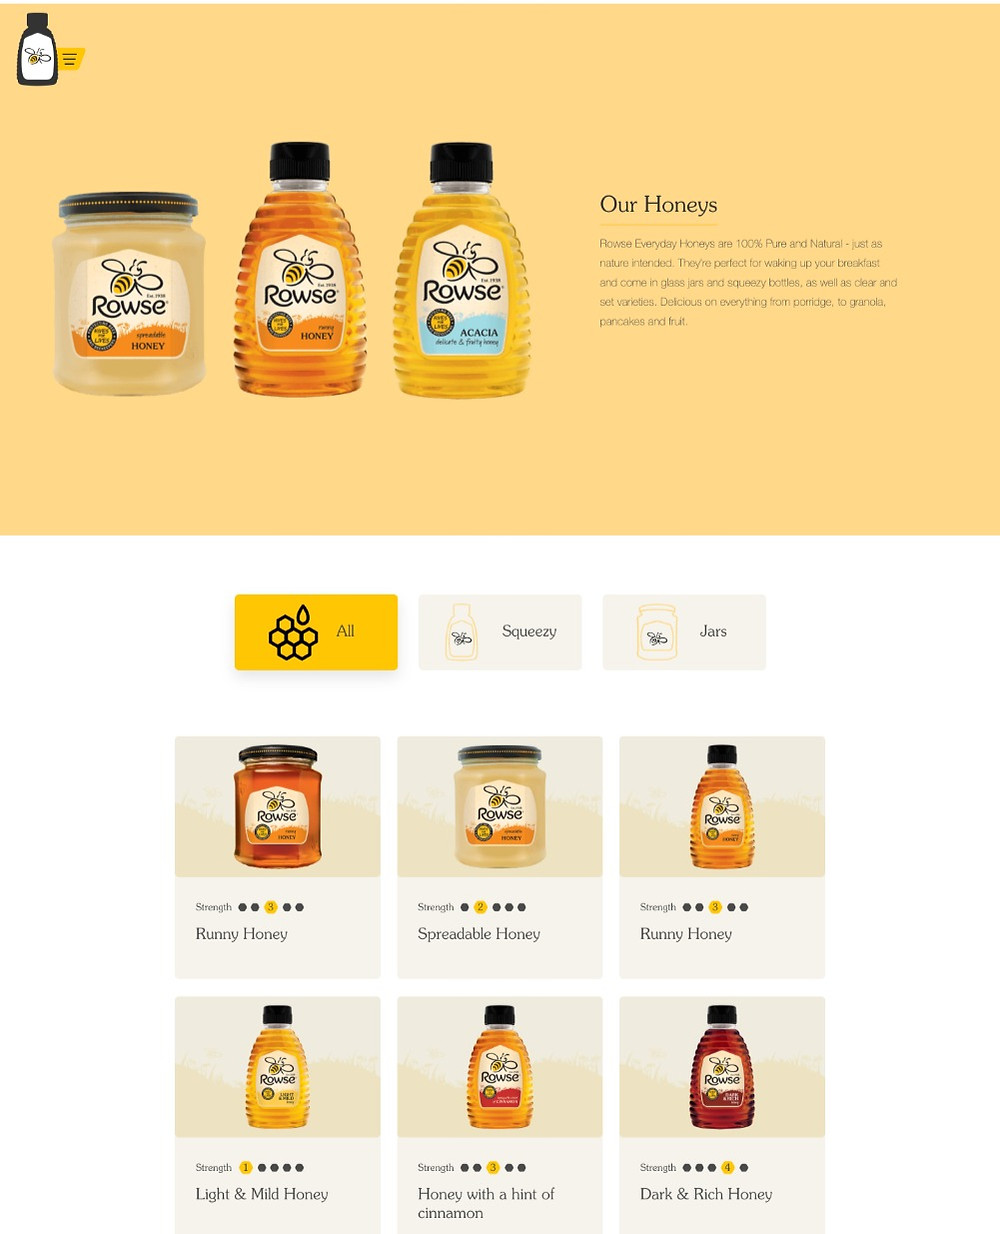 Rowse Honey product finder